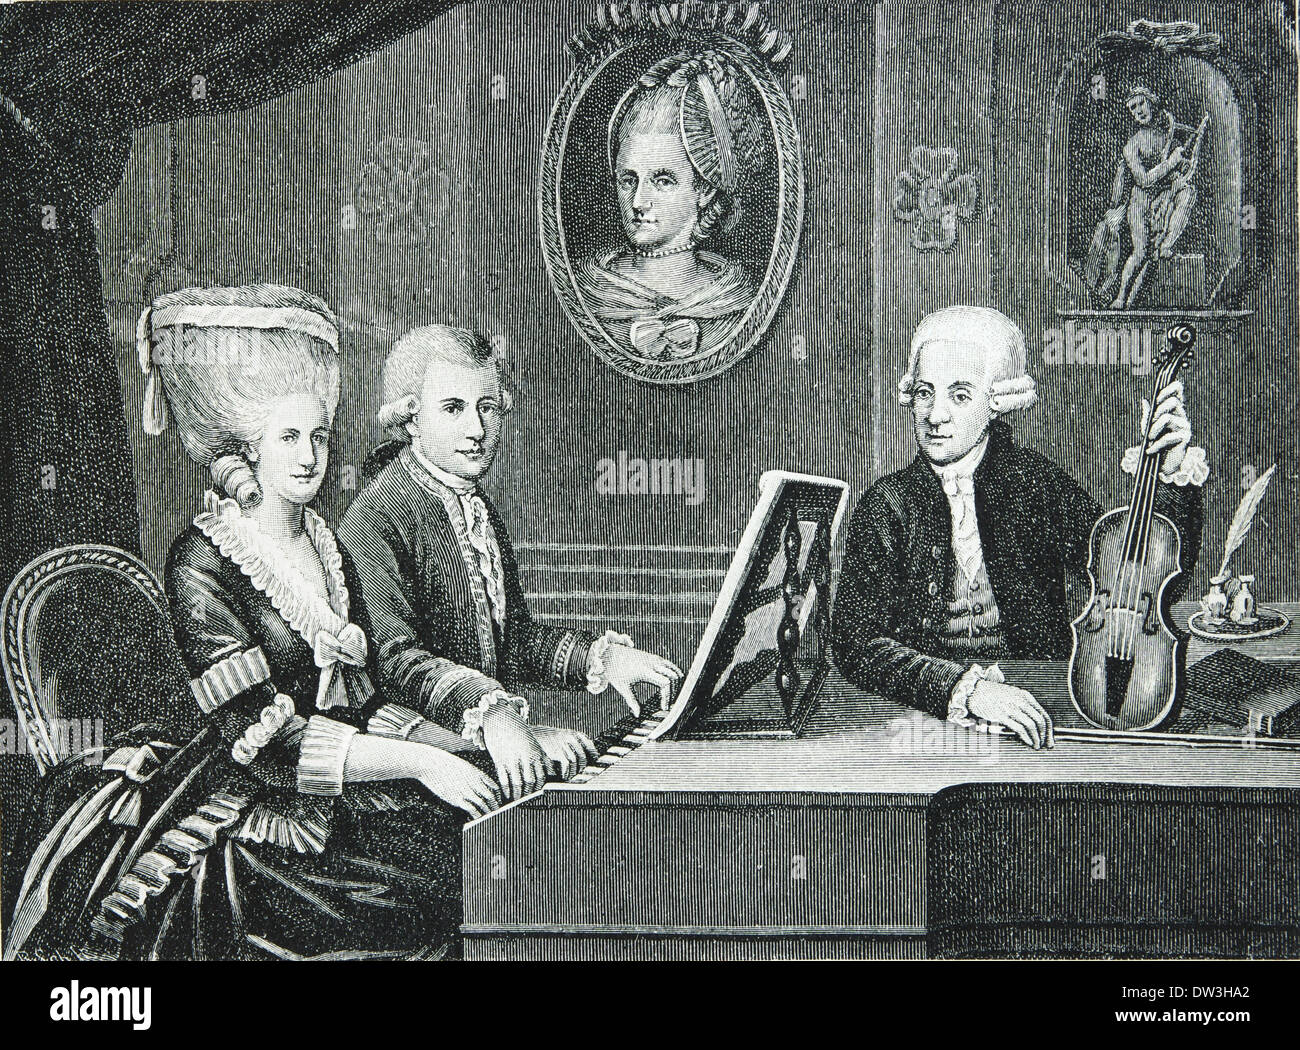 Wolfgang Amadeus Mozart (1756-1791). Composer of the Classical era. Mozart and his family. Engraving. - Stock Image